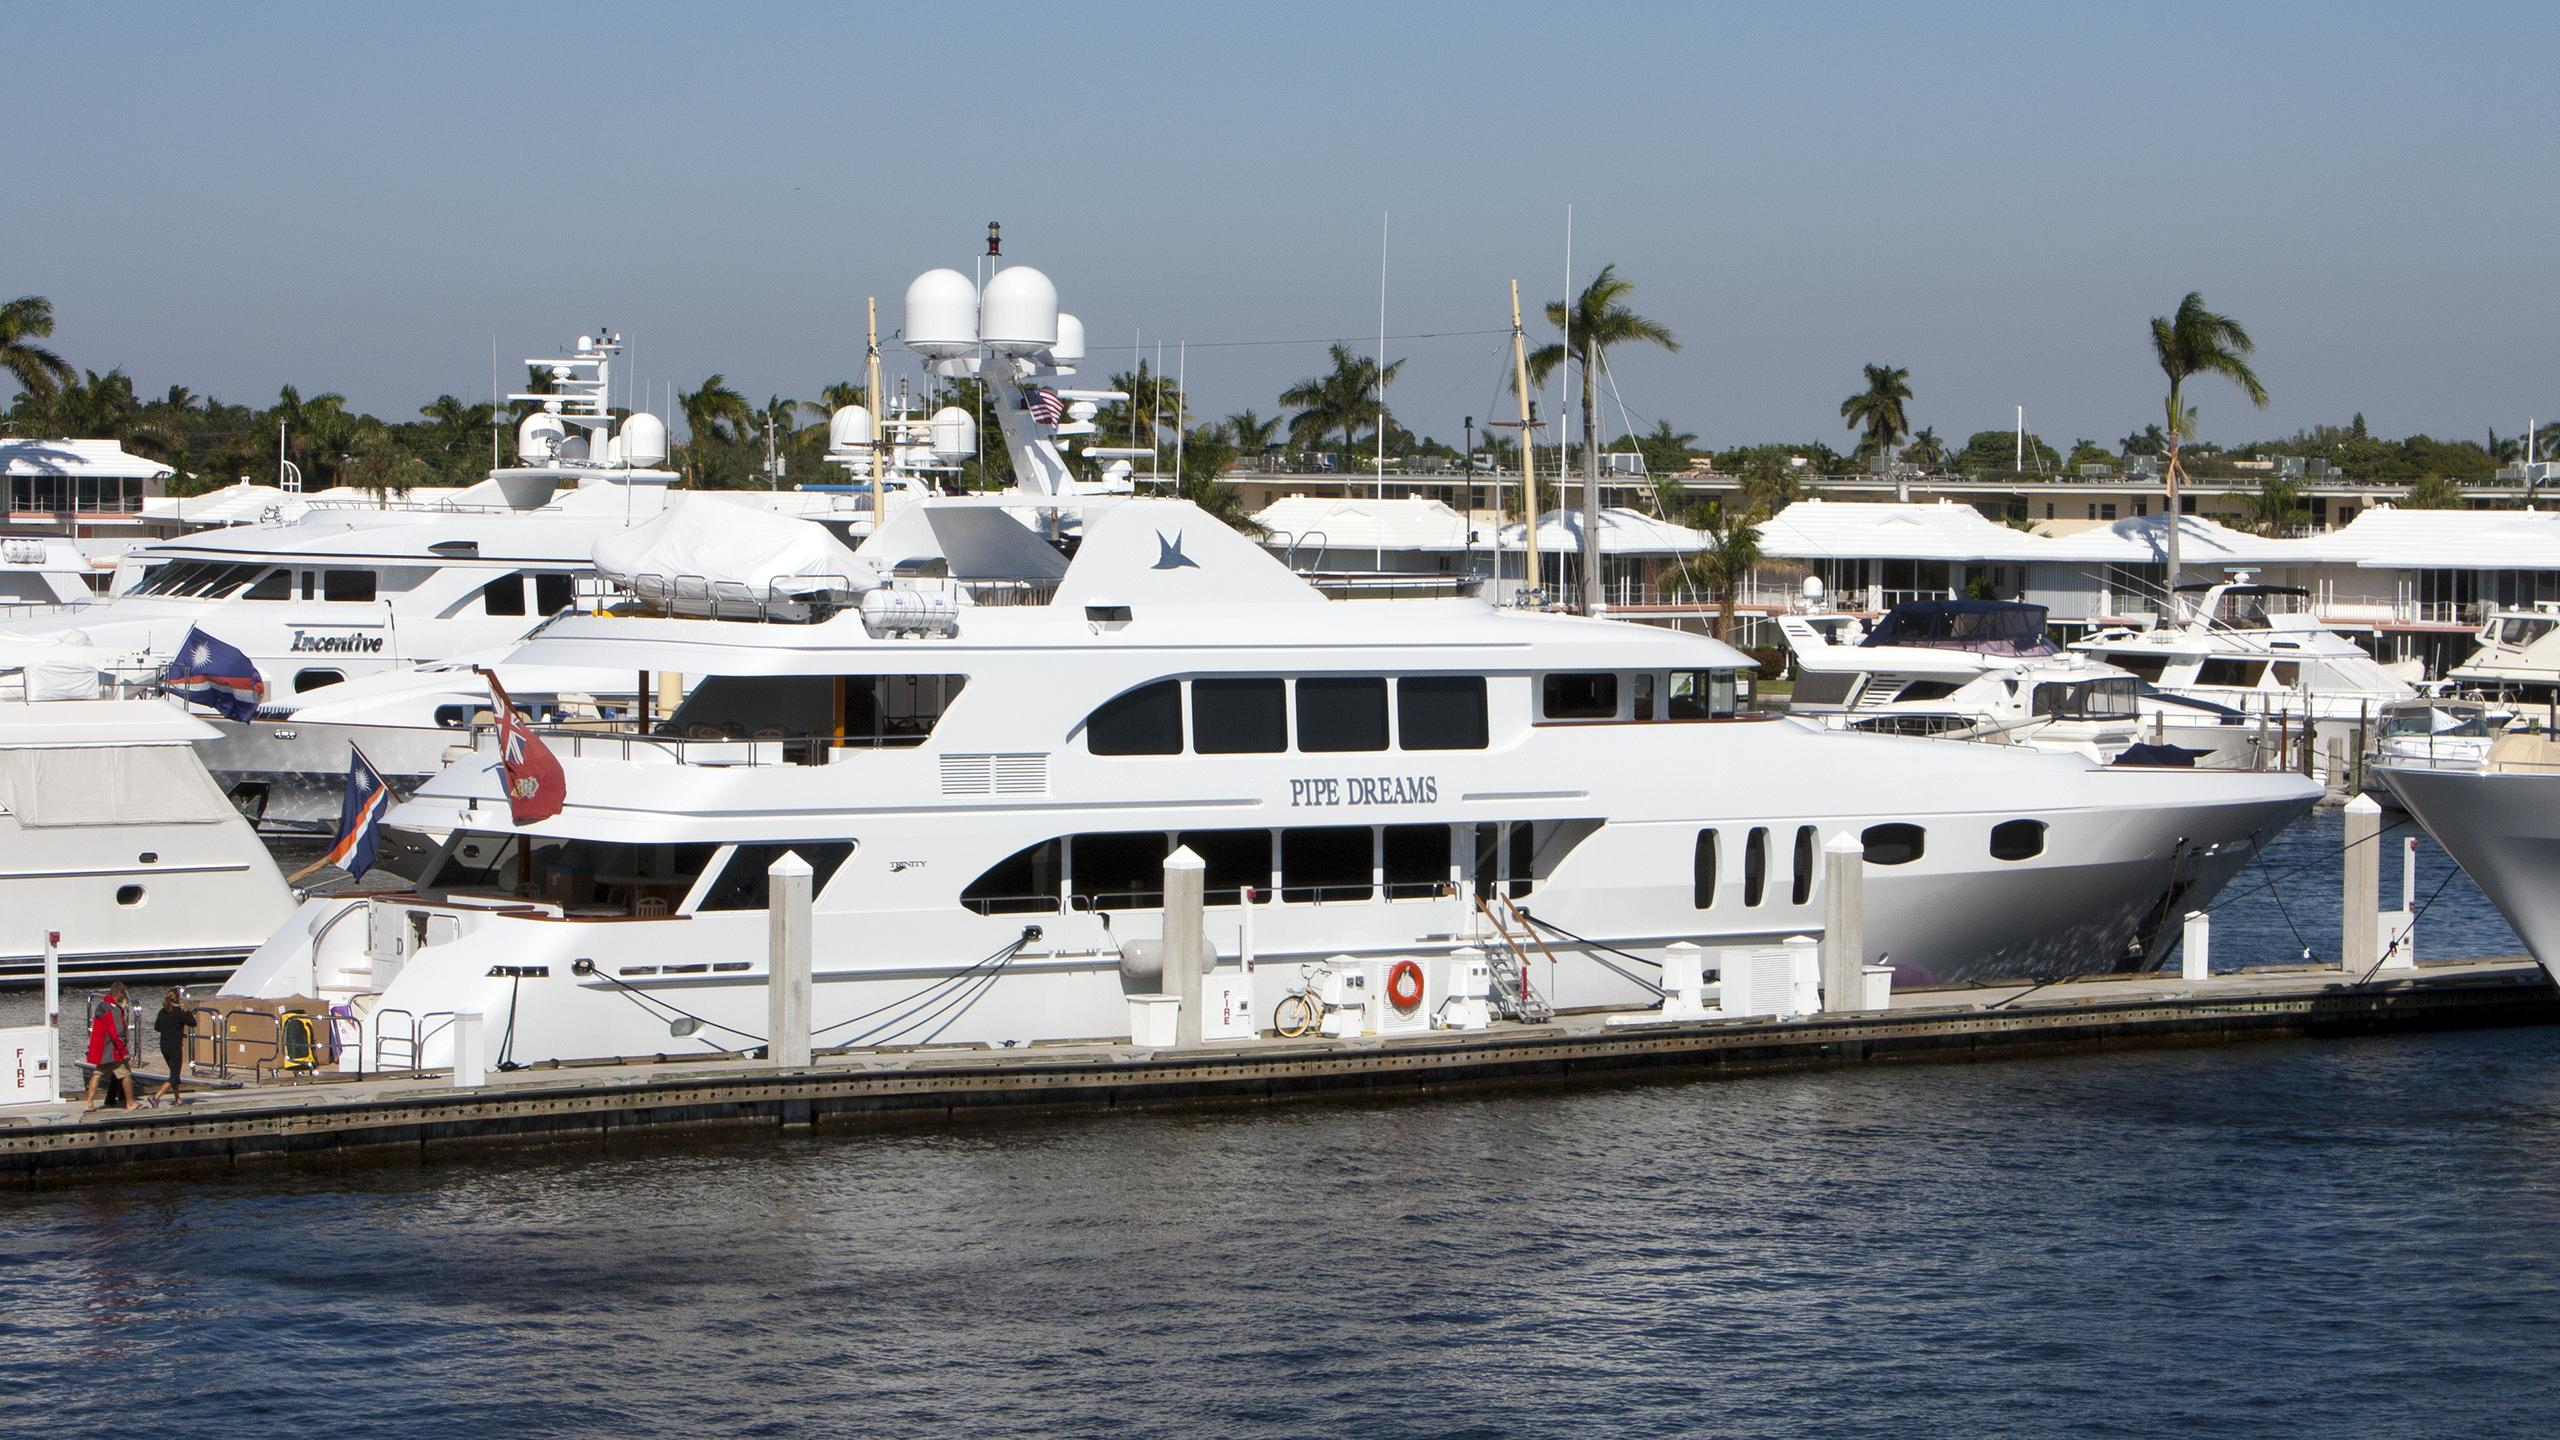 pipe-dreams-yacht-exterior